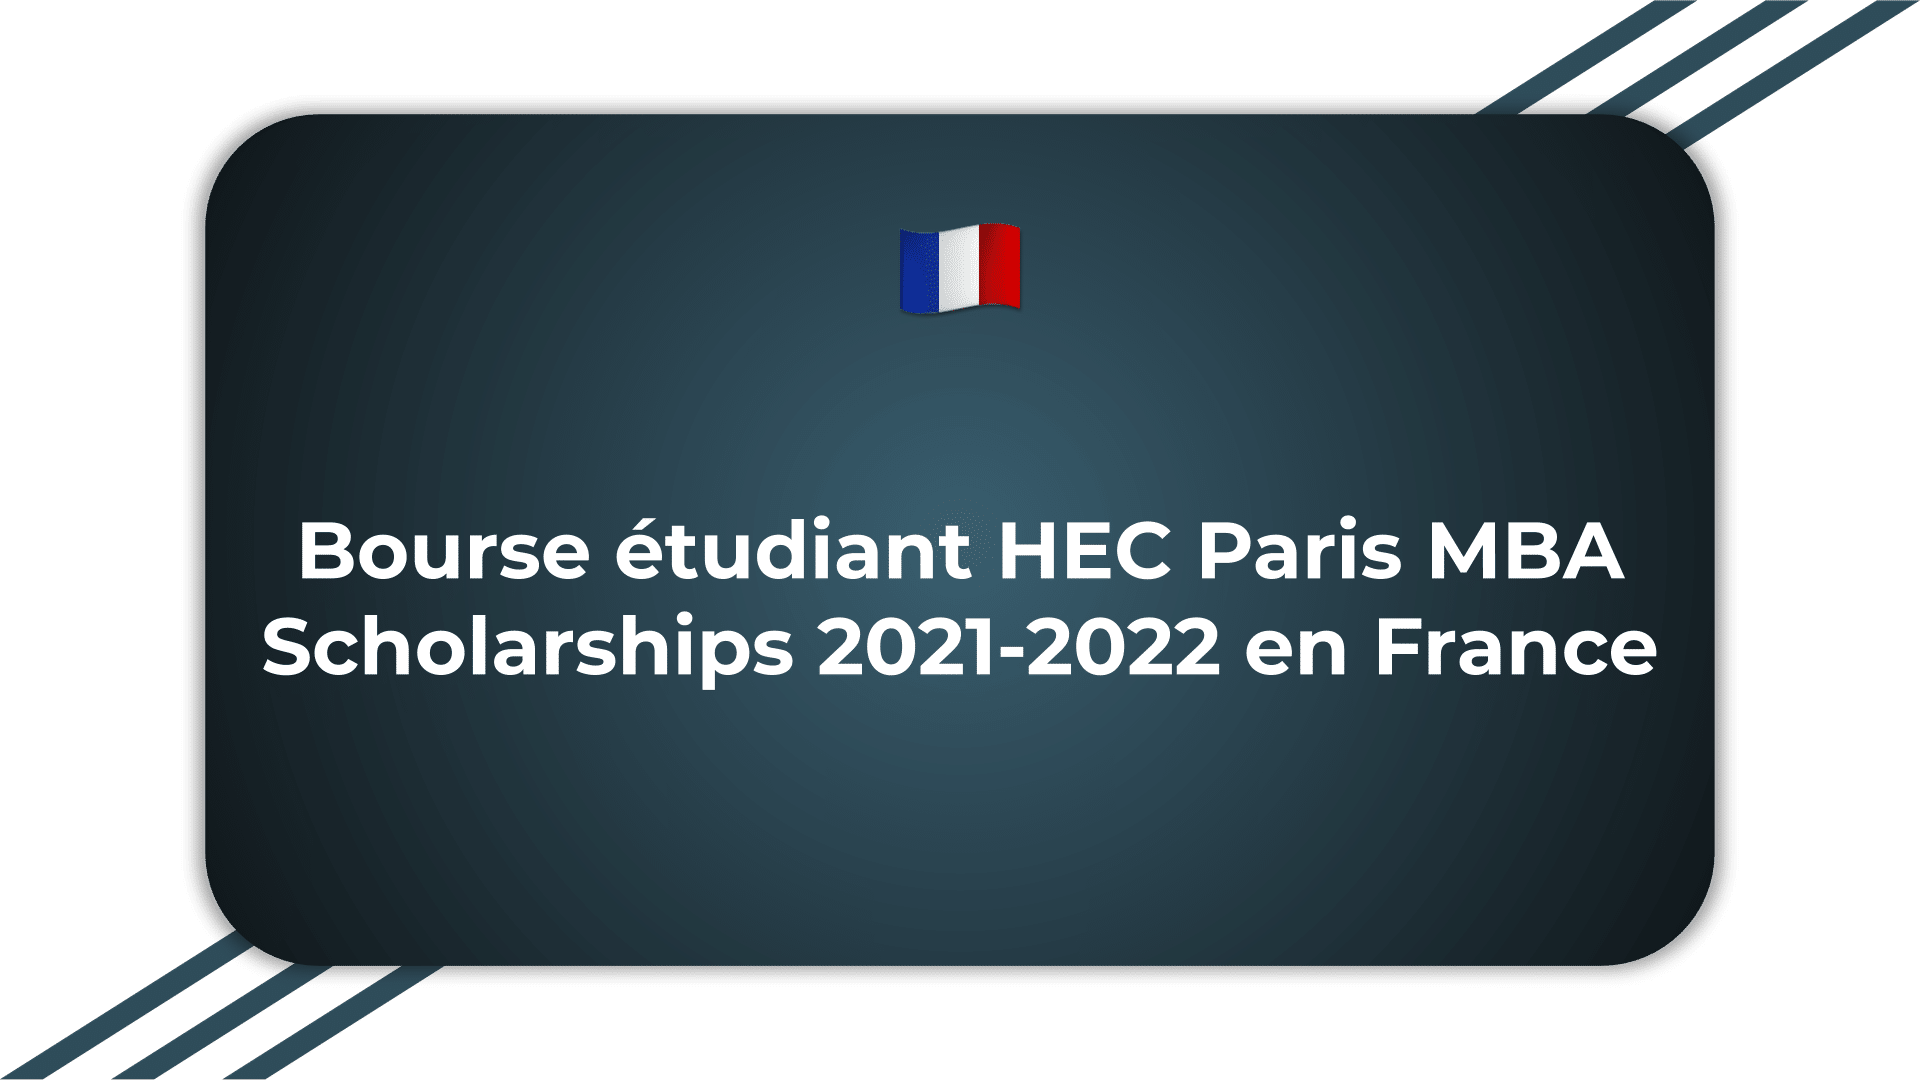 Bourse étudiant HEC Paris MBA Scholarships